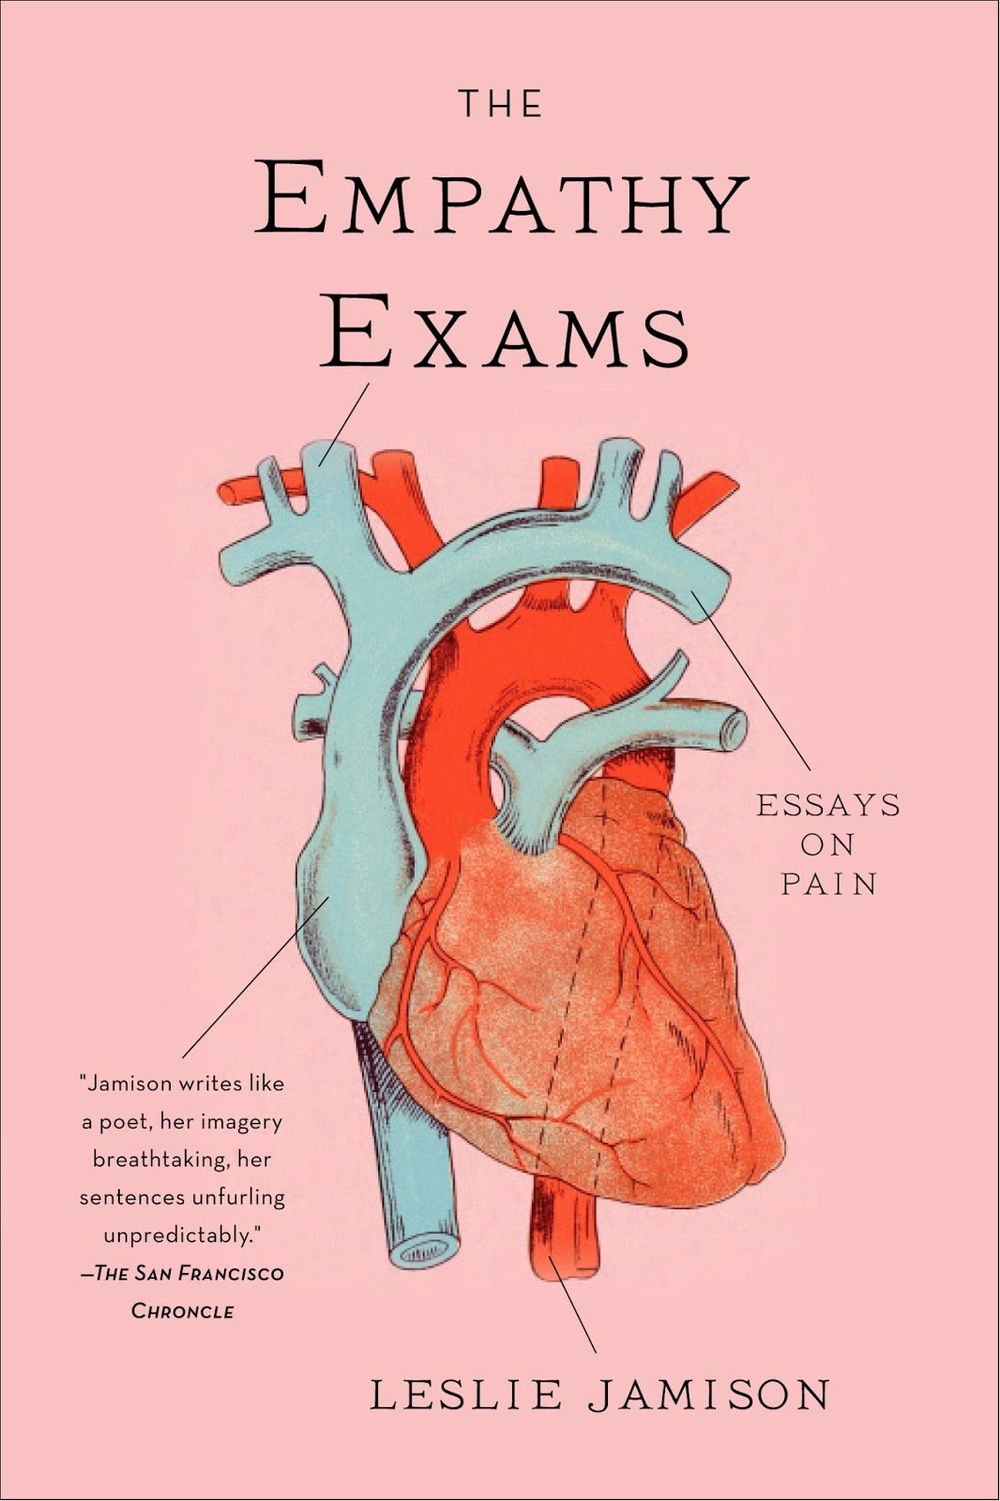 blog lindsay miller the empathy exams by leslie jamison leslie jamison s essays are the kind of ruminations that encourage readers to wander inside ideas